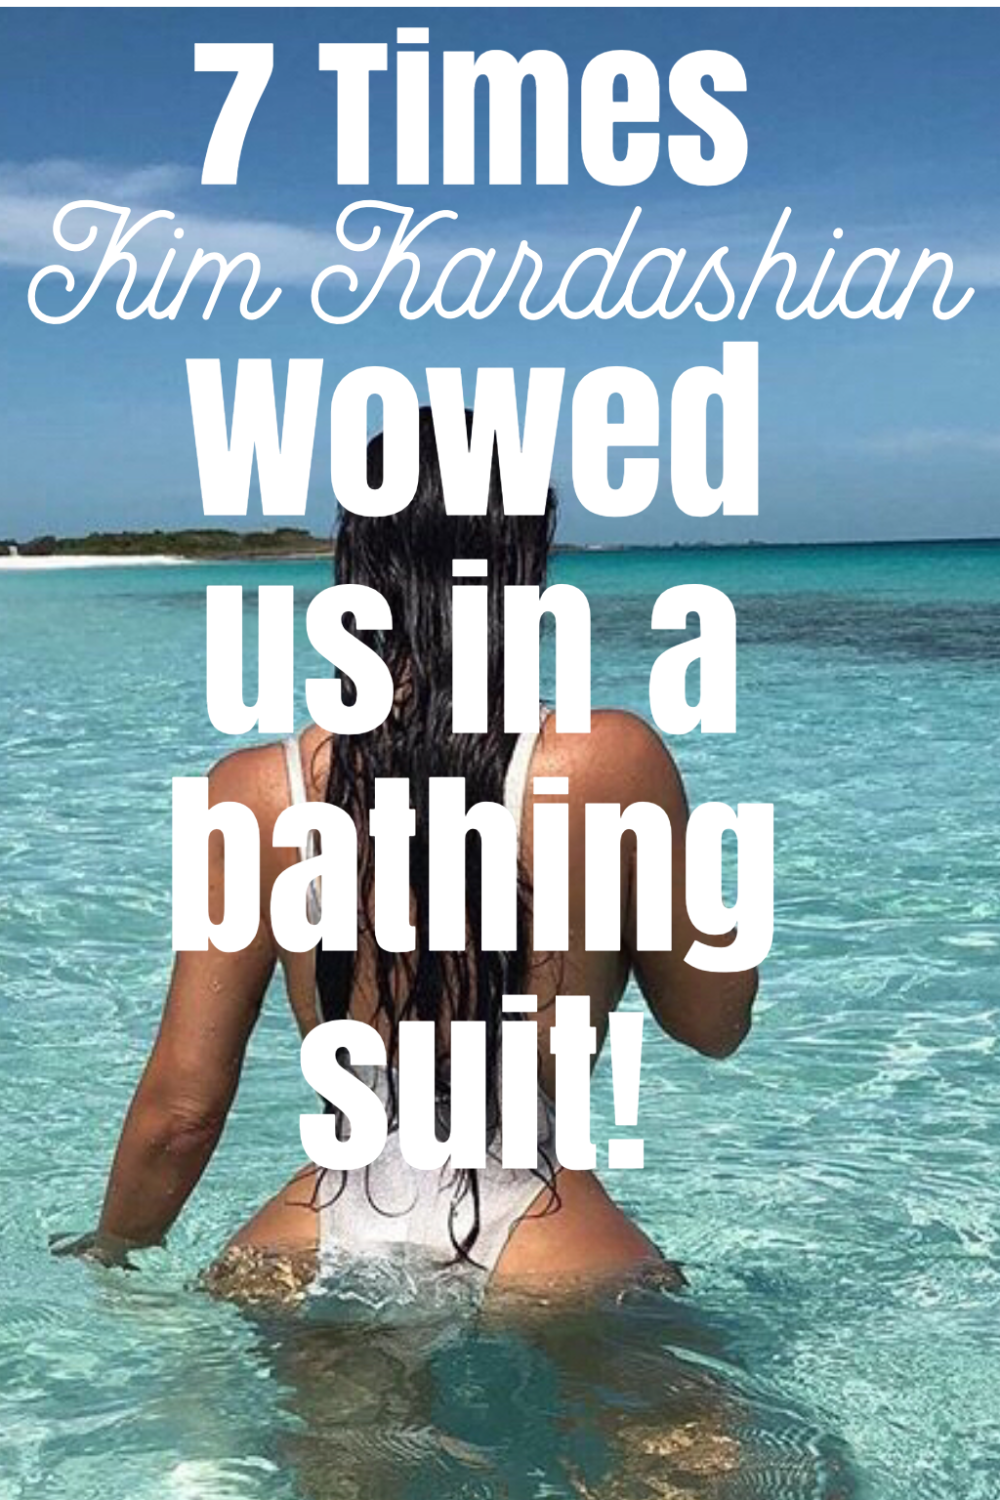 The Kardashians, especially Kim are known for going viral on selfies alone! So I thought it would be neat to put together a list of the 7 Times Kim K. Wowed us in a bathing suit! #fashion #bathingsuit #swimming #swimdress #swimsuit #celebritynews #celebrityfashion #kimkardashianstyle #kardashianstyle #kardashian #kimkardashin